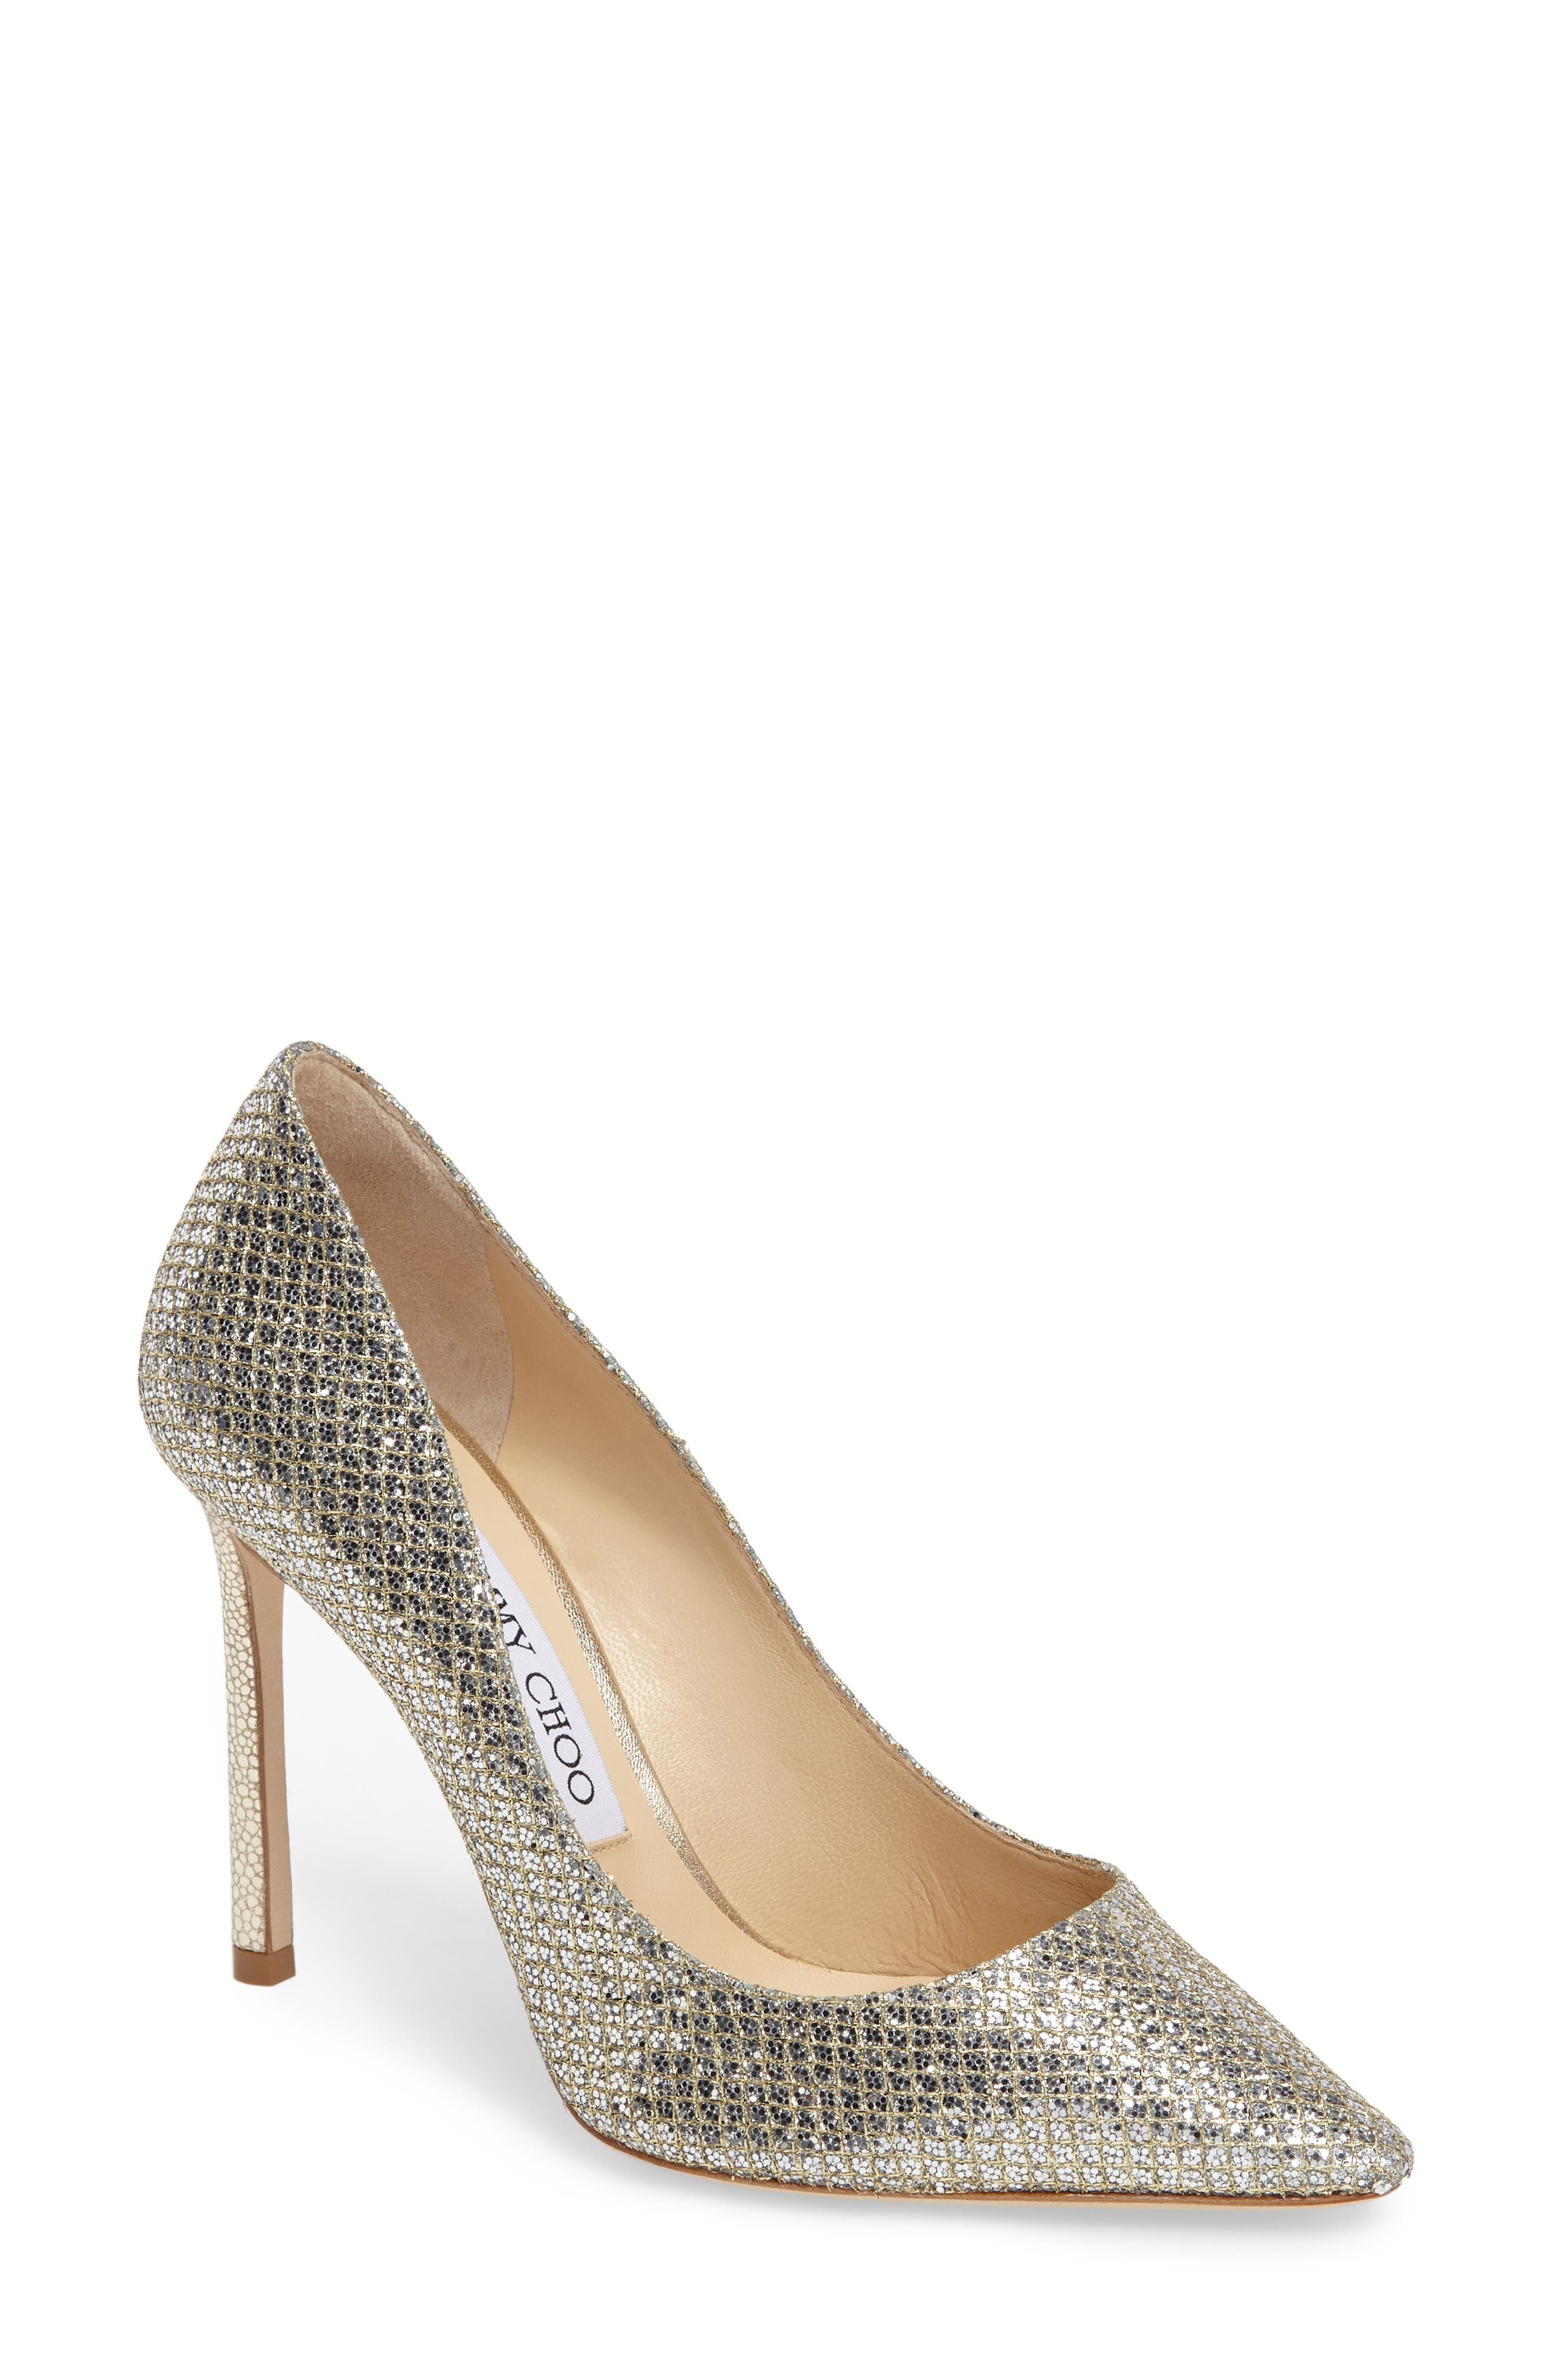 Romy Pointy Toe Pump,                             Main thumbnail 1, color,                             CHAMPAGNE